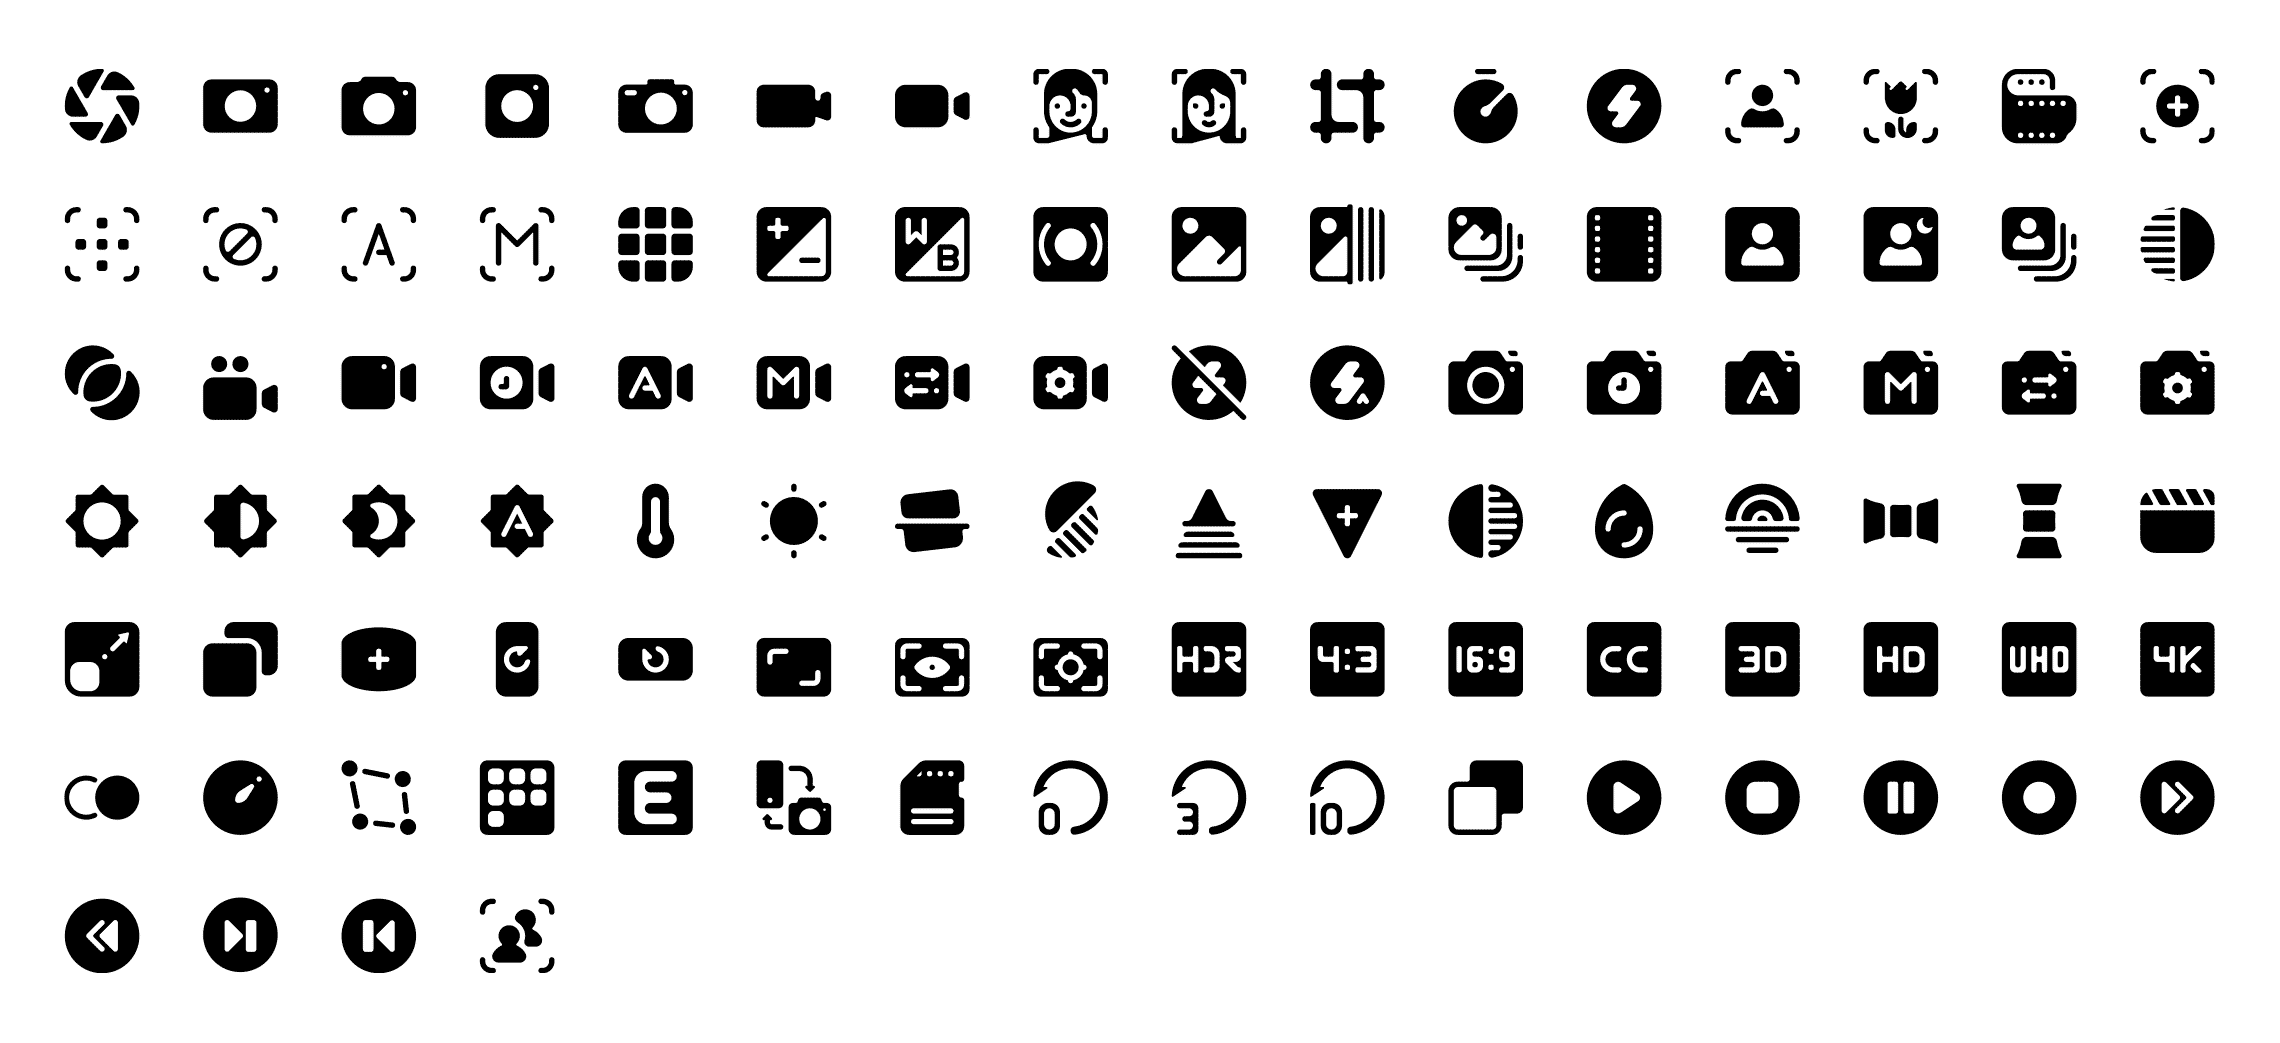 2200 Roundies Solid Vector Icons Pack.